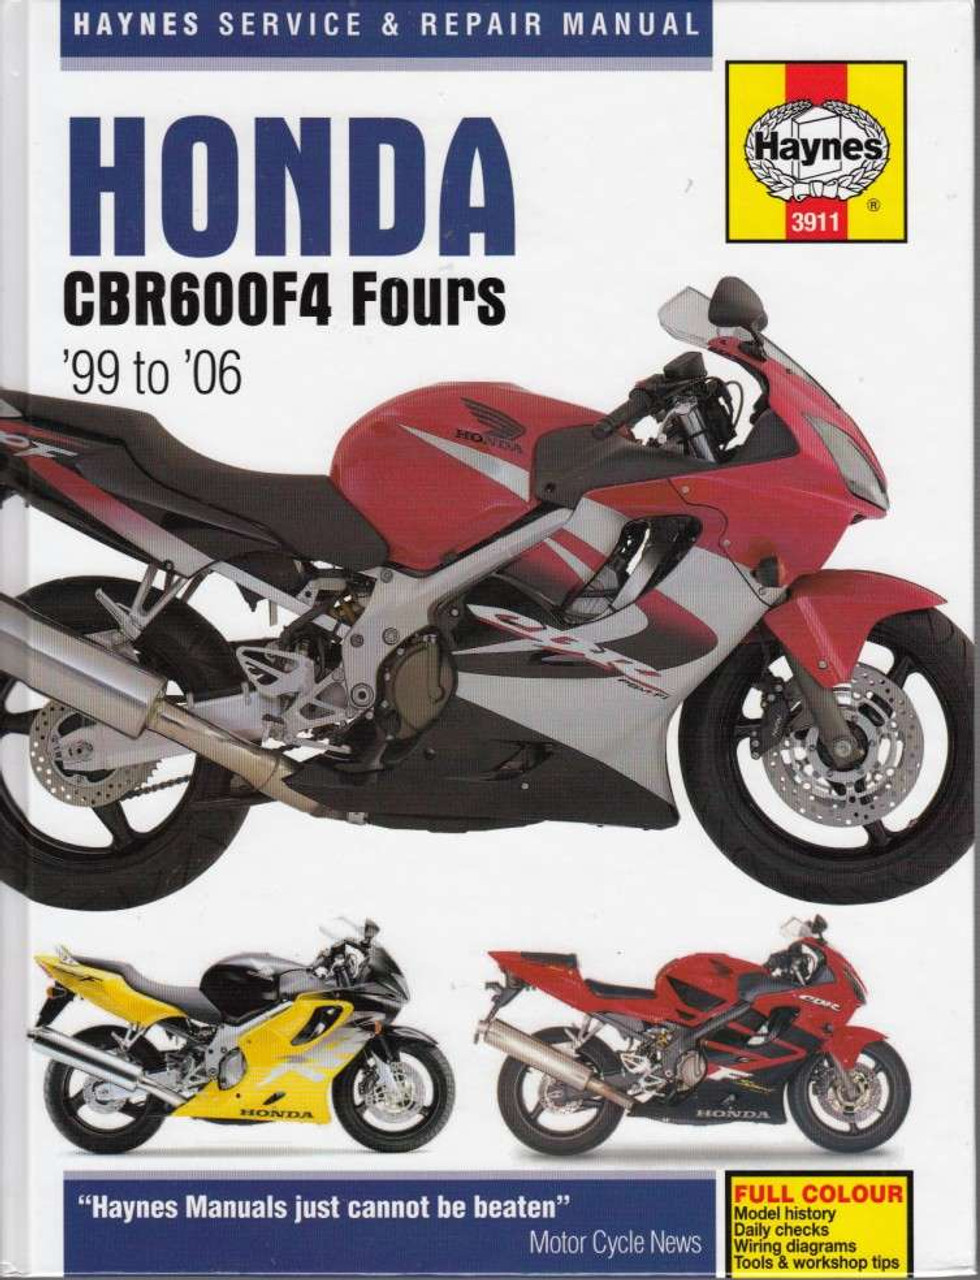 small resolution of b8617b honda cbr600f4 fours repair manual 35474 1374803340 jpg c 2 imbypass on imbypass on